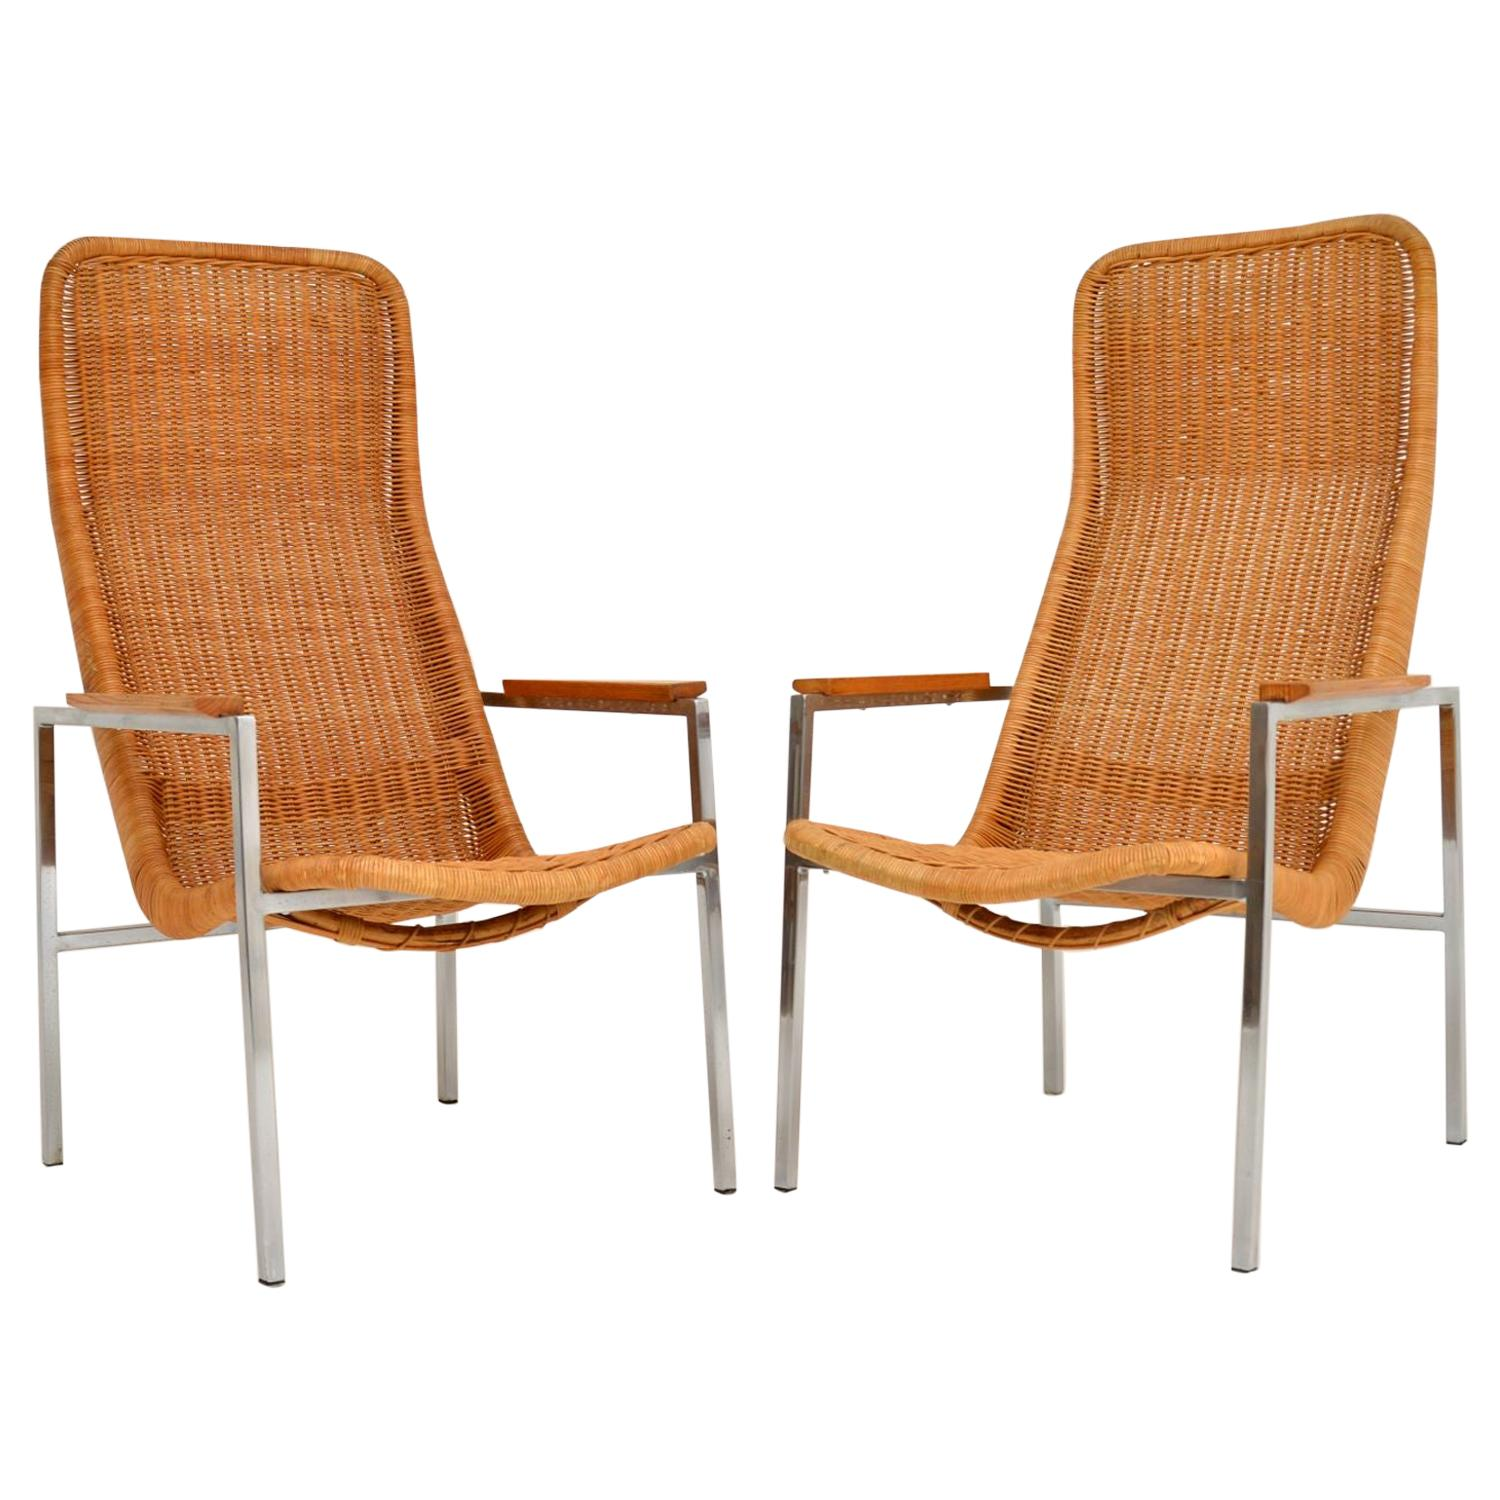 Pair of Vintage Chrome and Rattan Armchairs by Dirk Van Sliedrecht